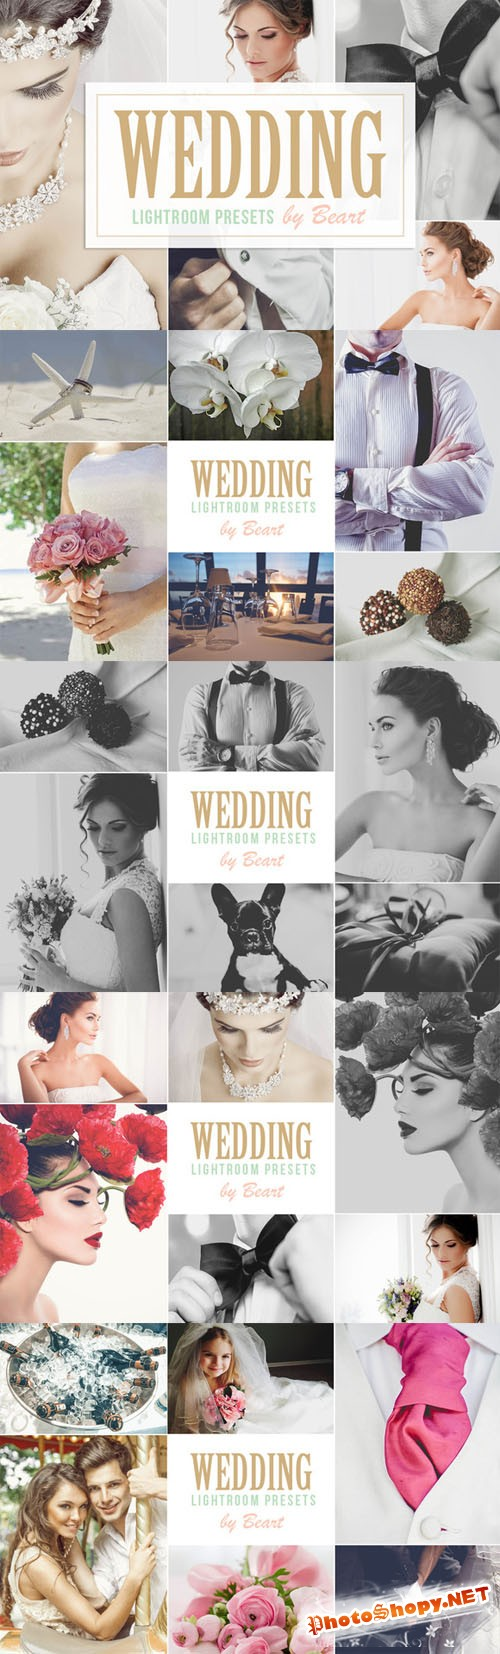 Wedding Lightroom Presets - CM 101567